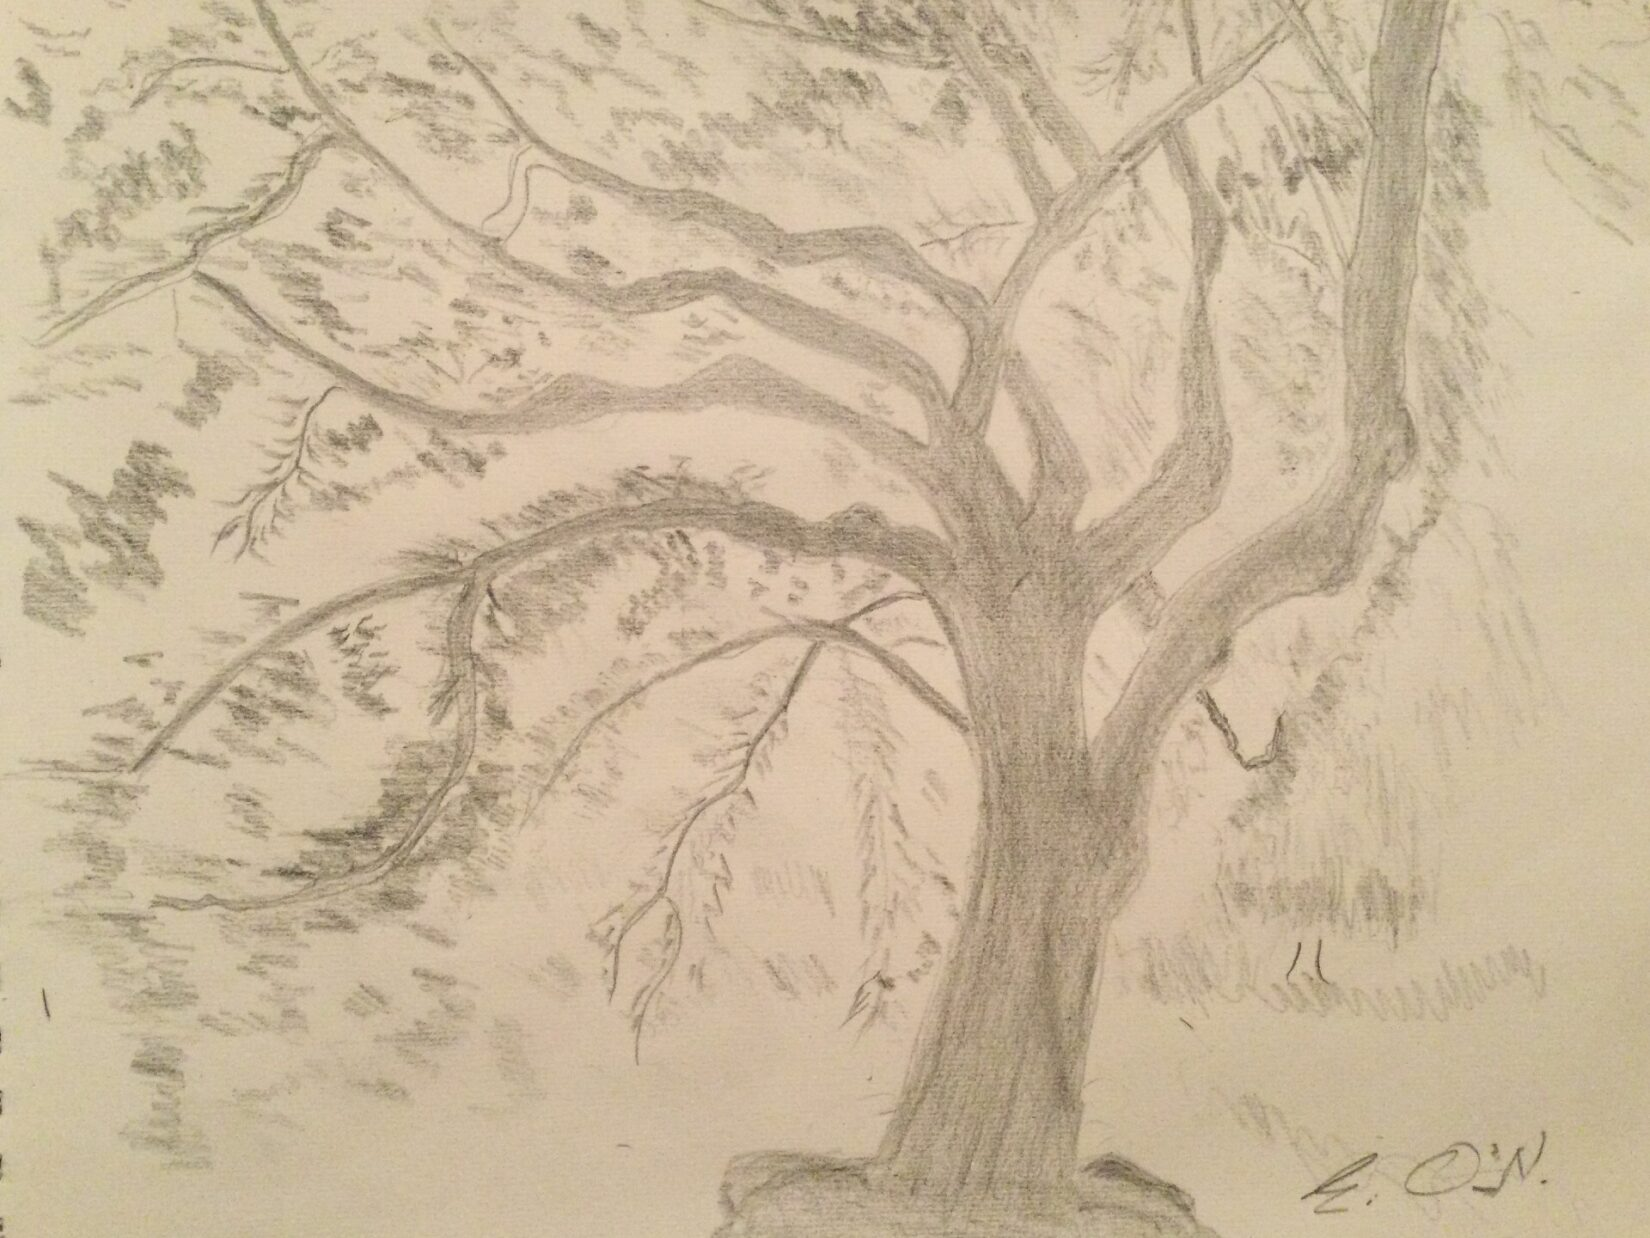 Pencil drawing of a cherry tree